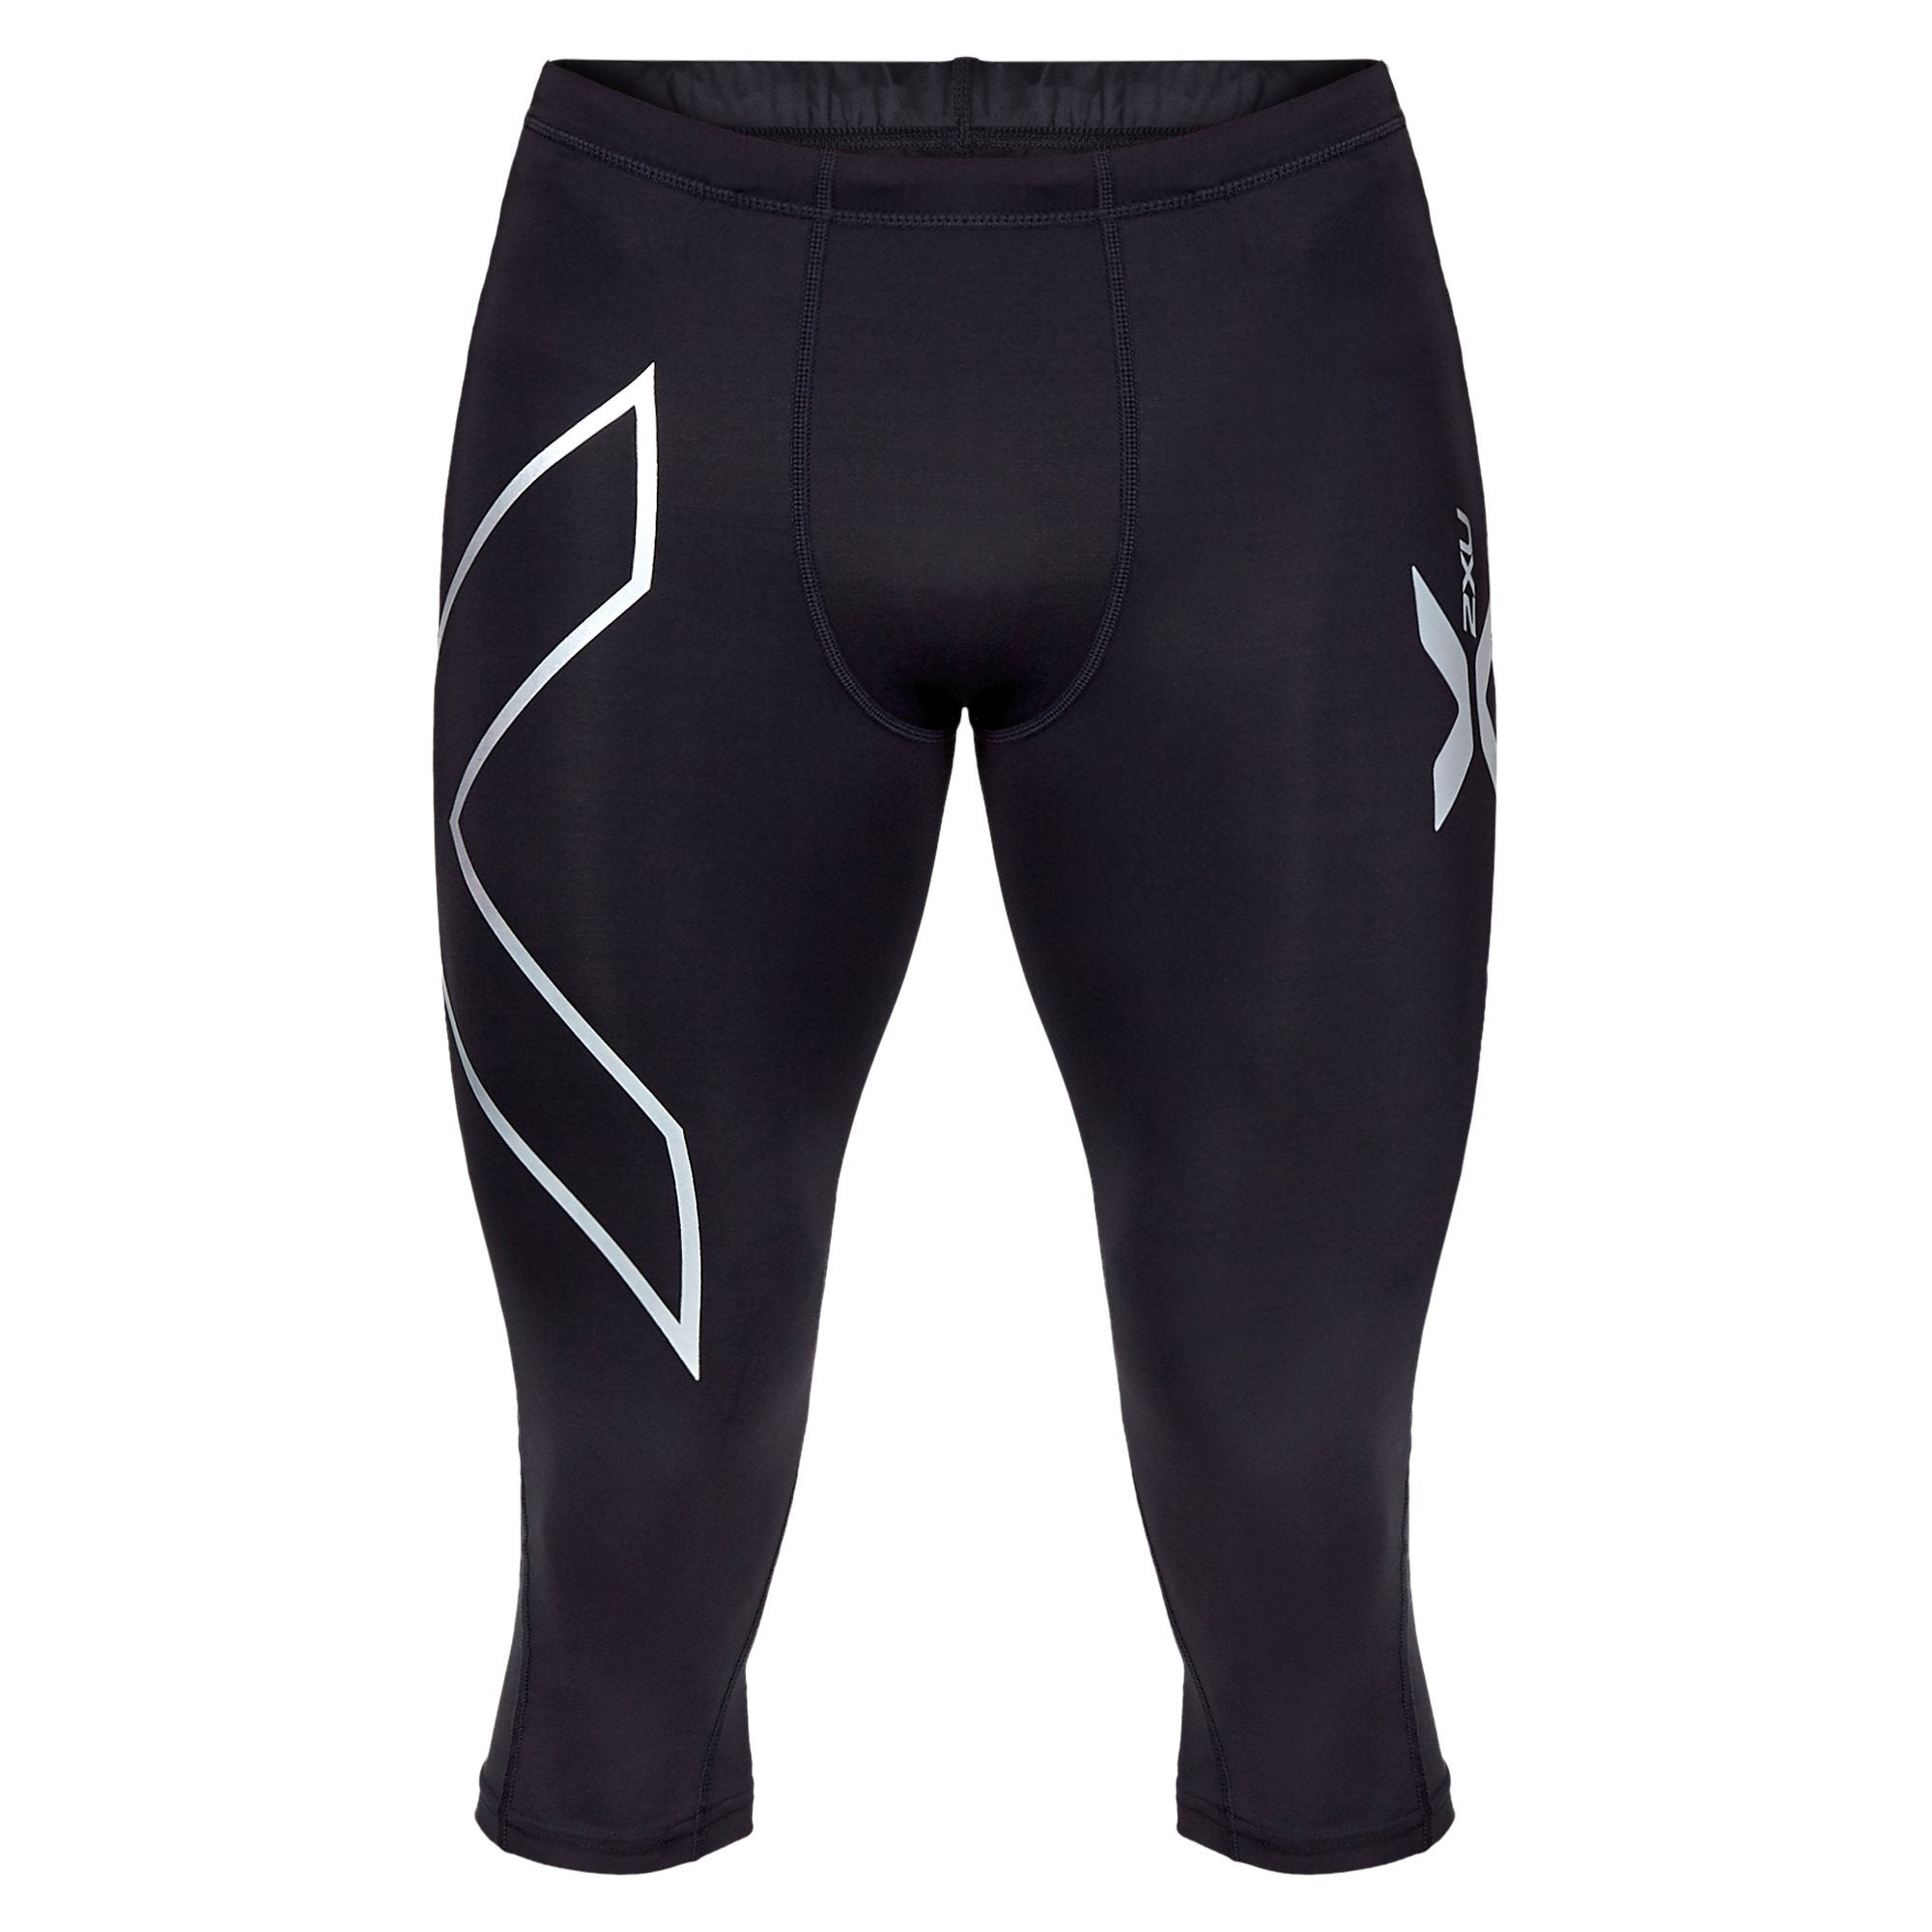 2XU Men's Compression 3/4 Tights - Black/Black Apparel 2XU  (2019203153979)